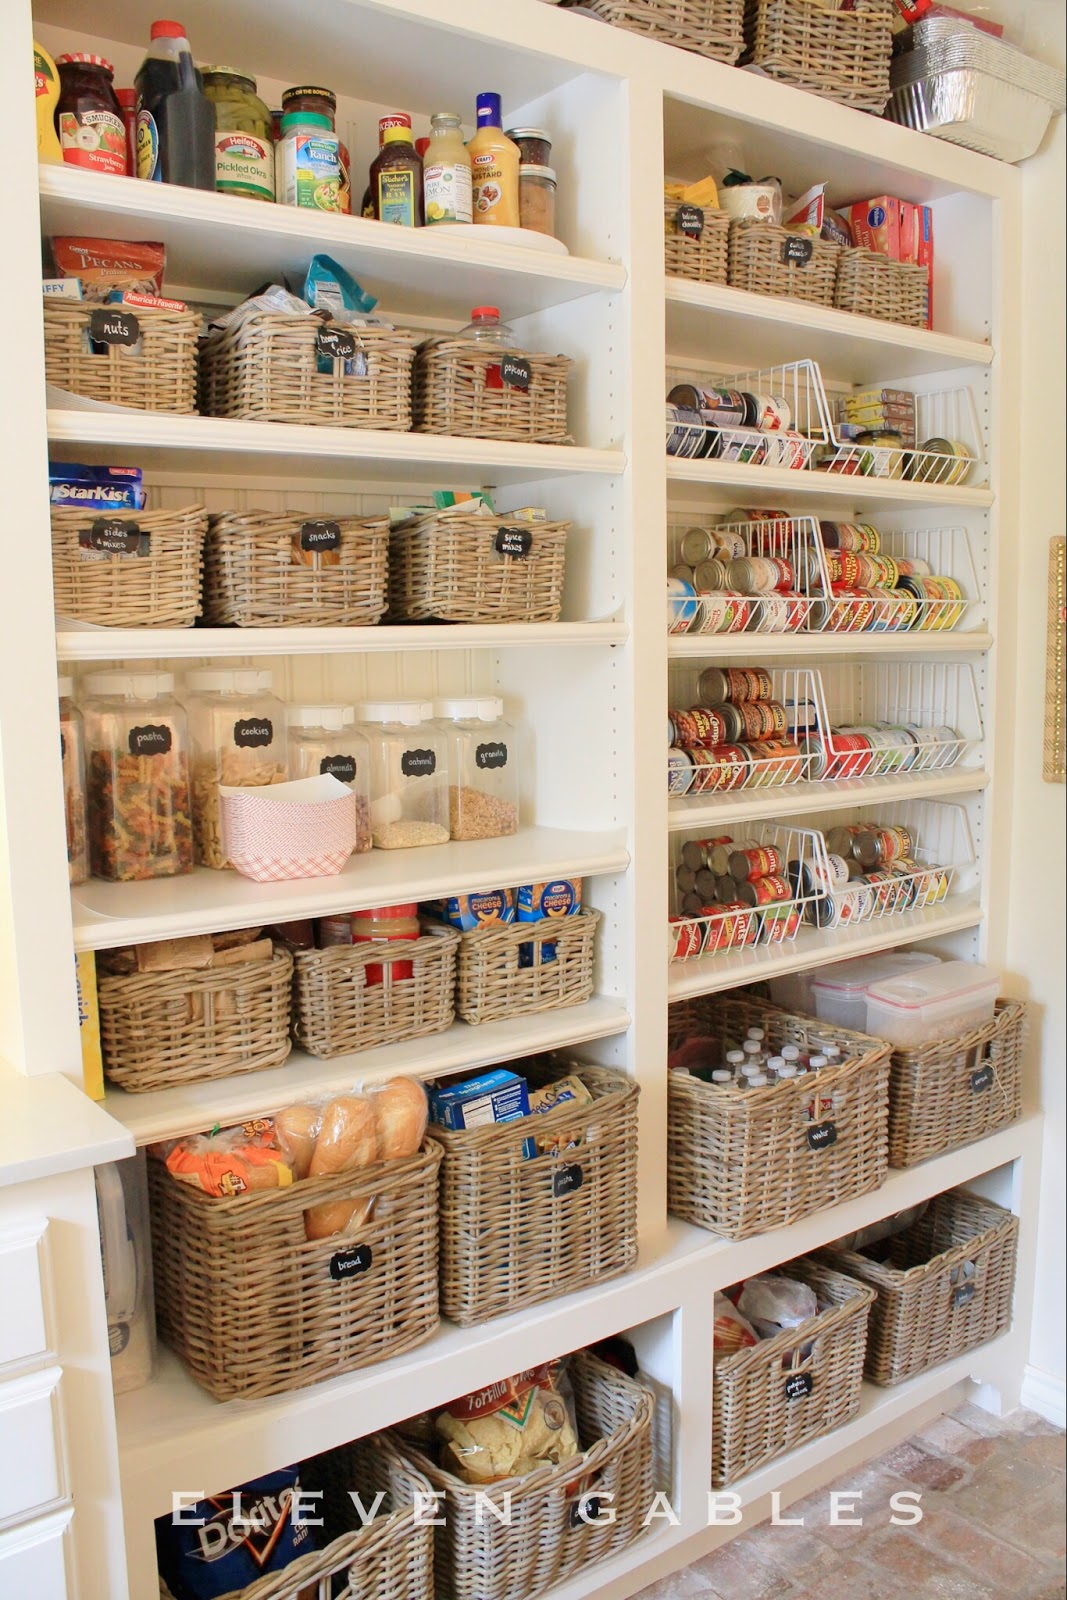 Eleven Gables Pantry